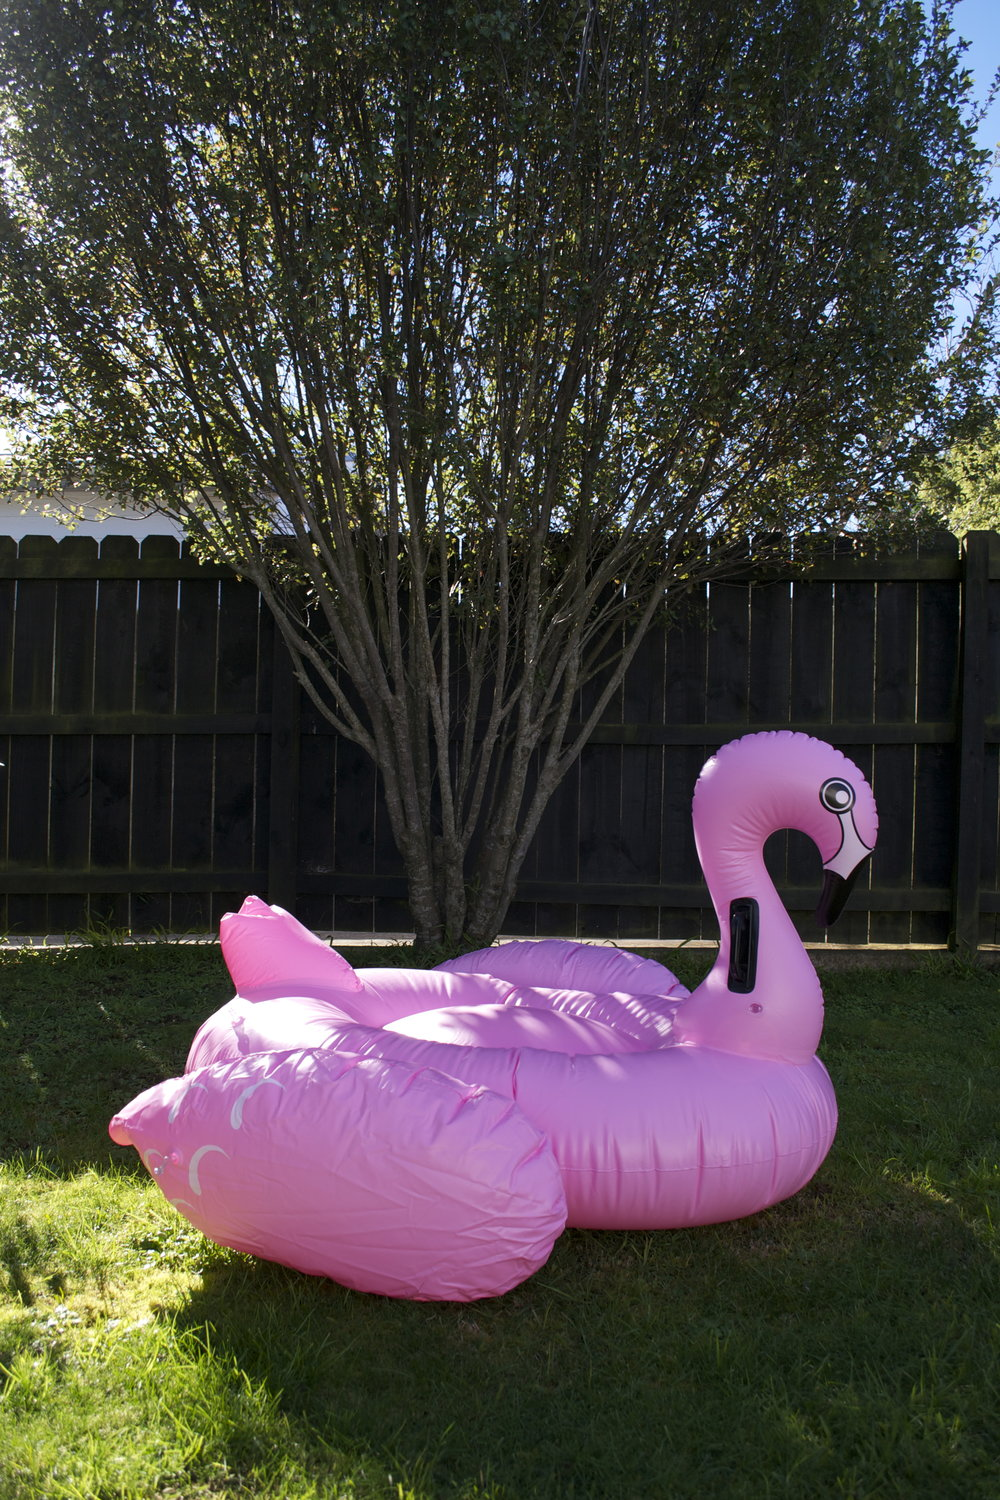 flamingo pool float x1 $8